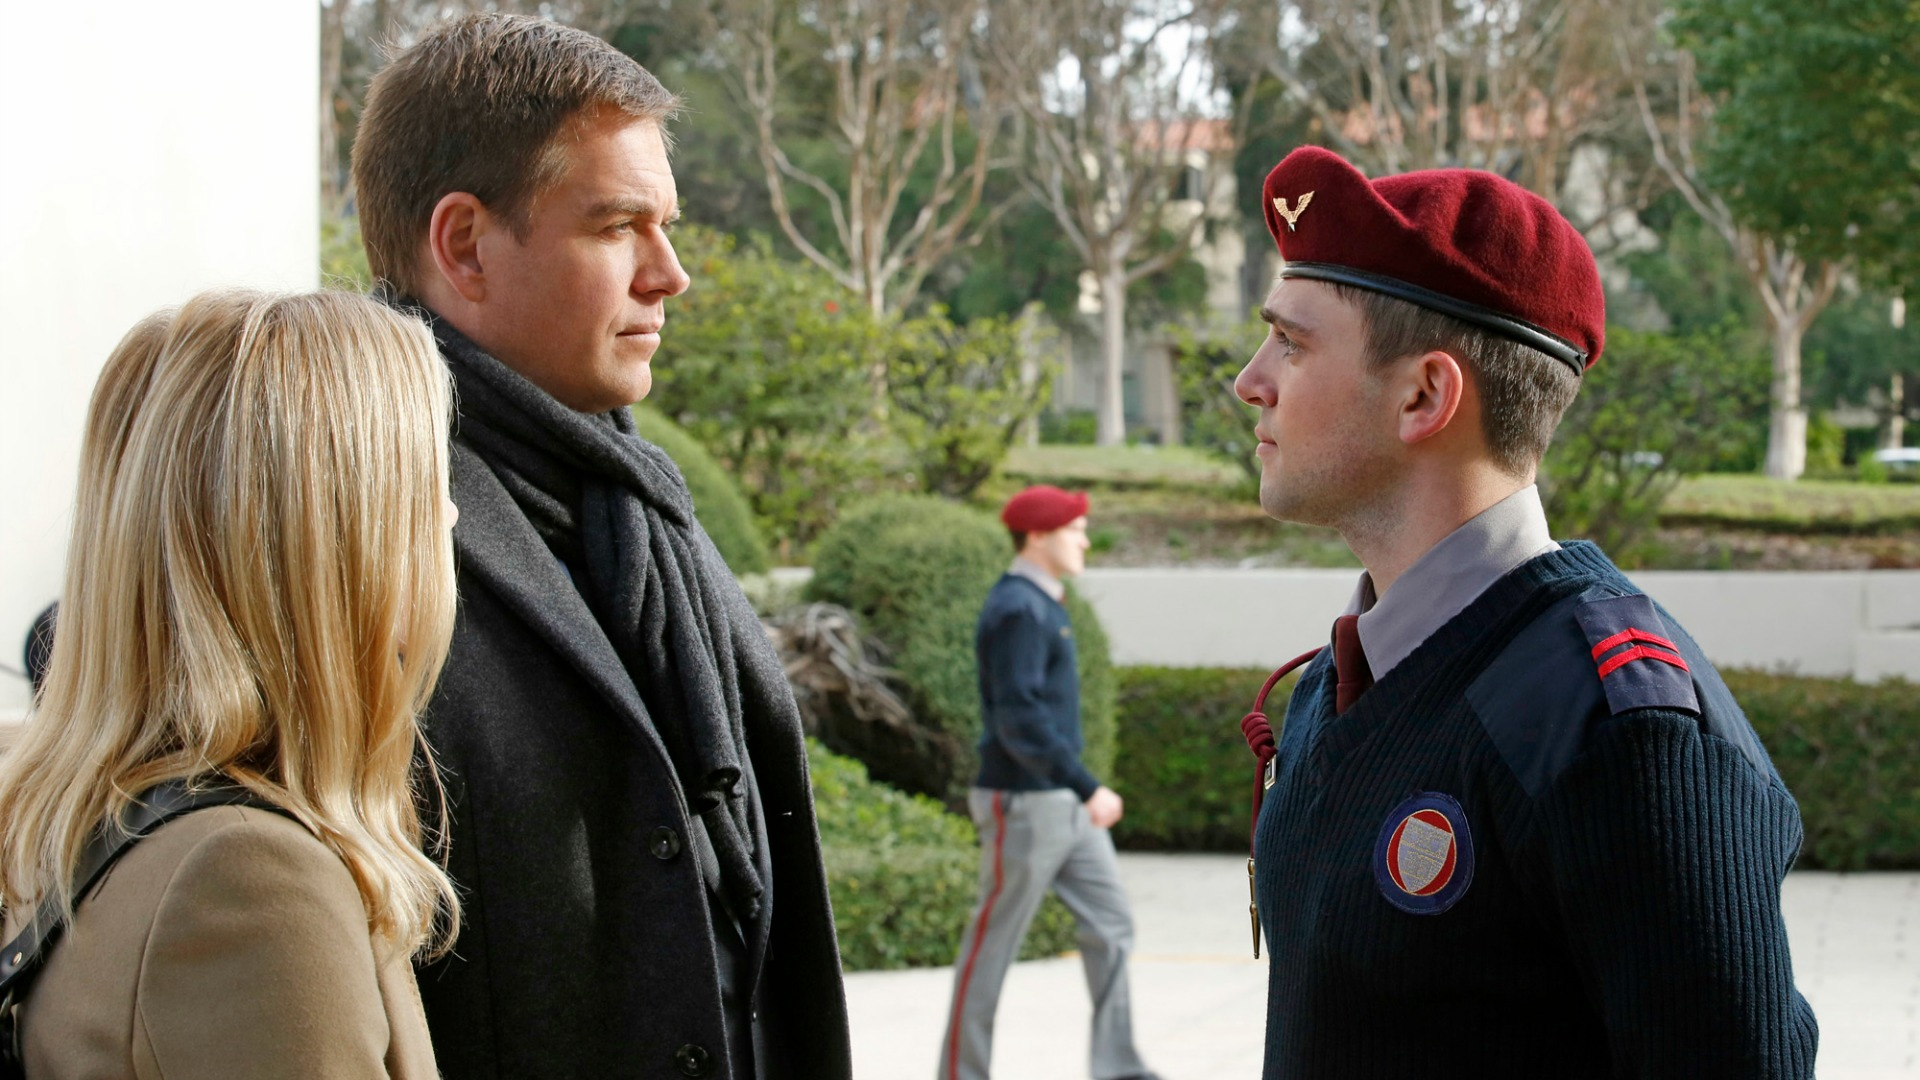 Robert Adamson as Senior Cadet Lucas Craig.